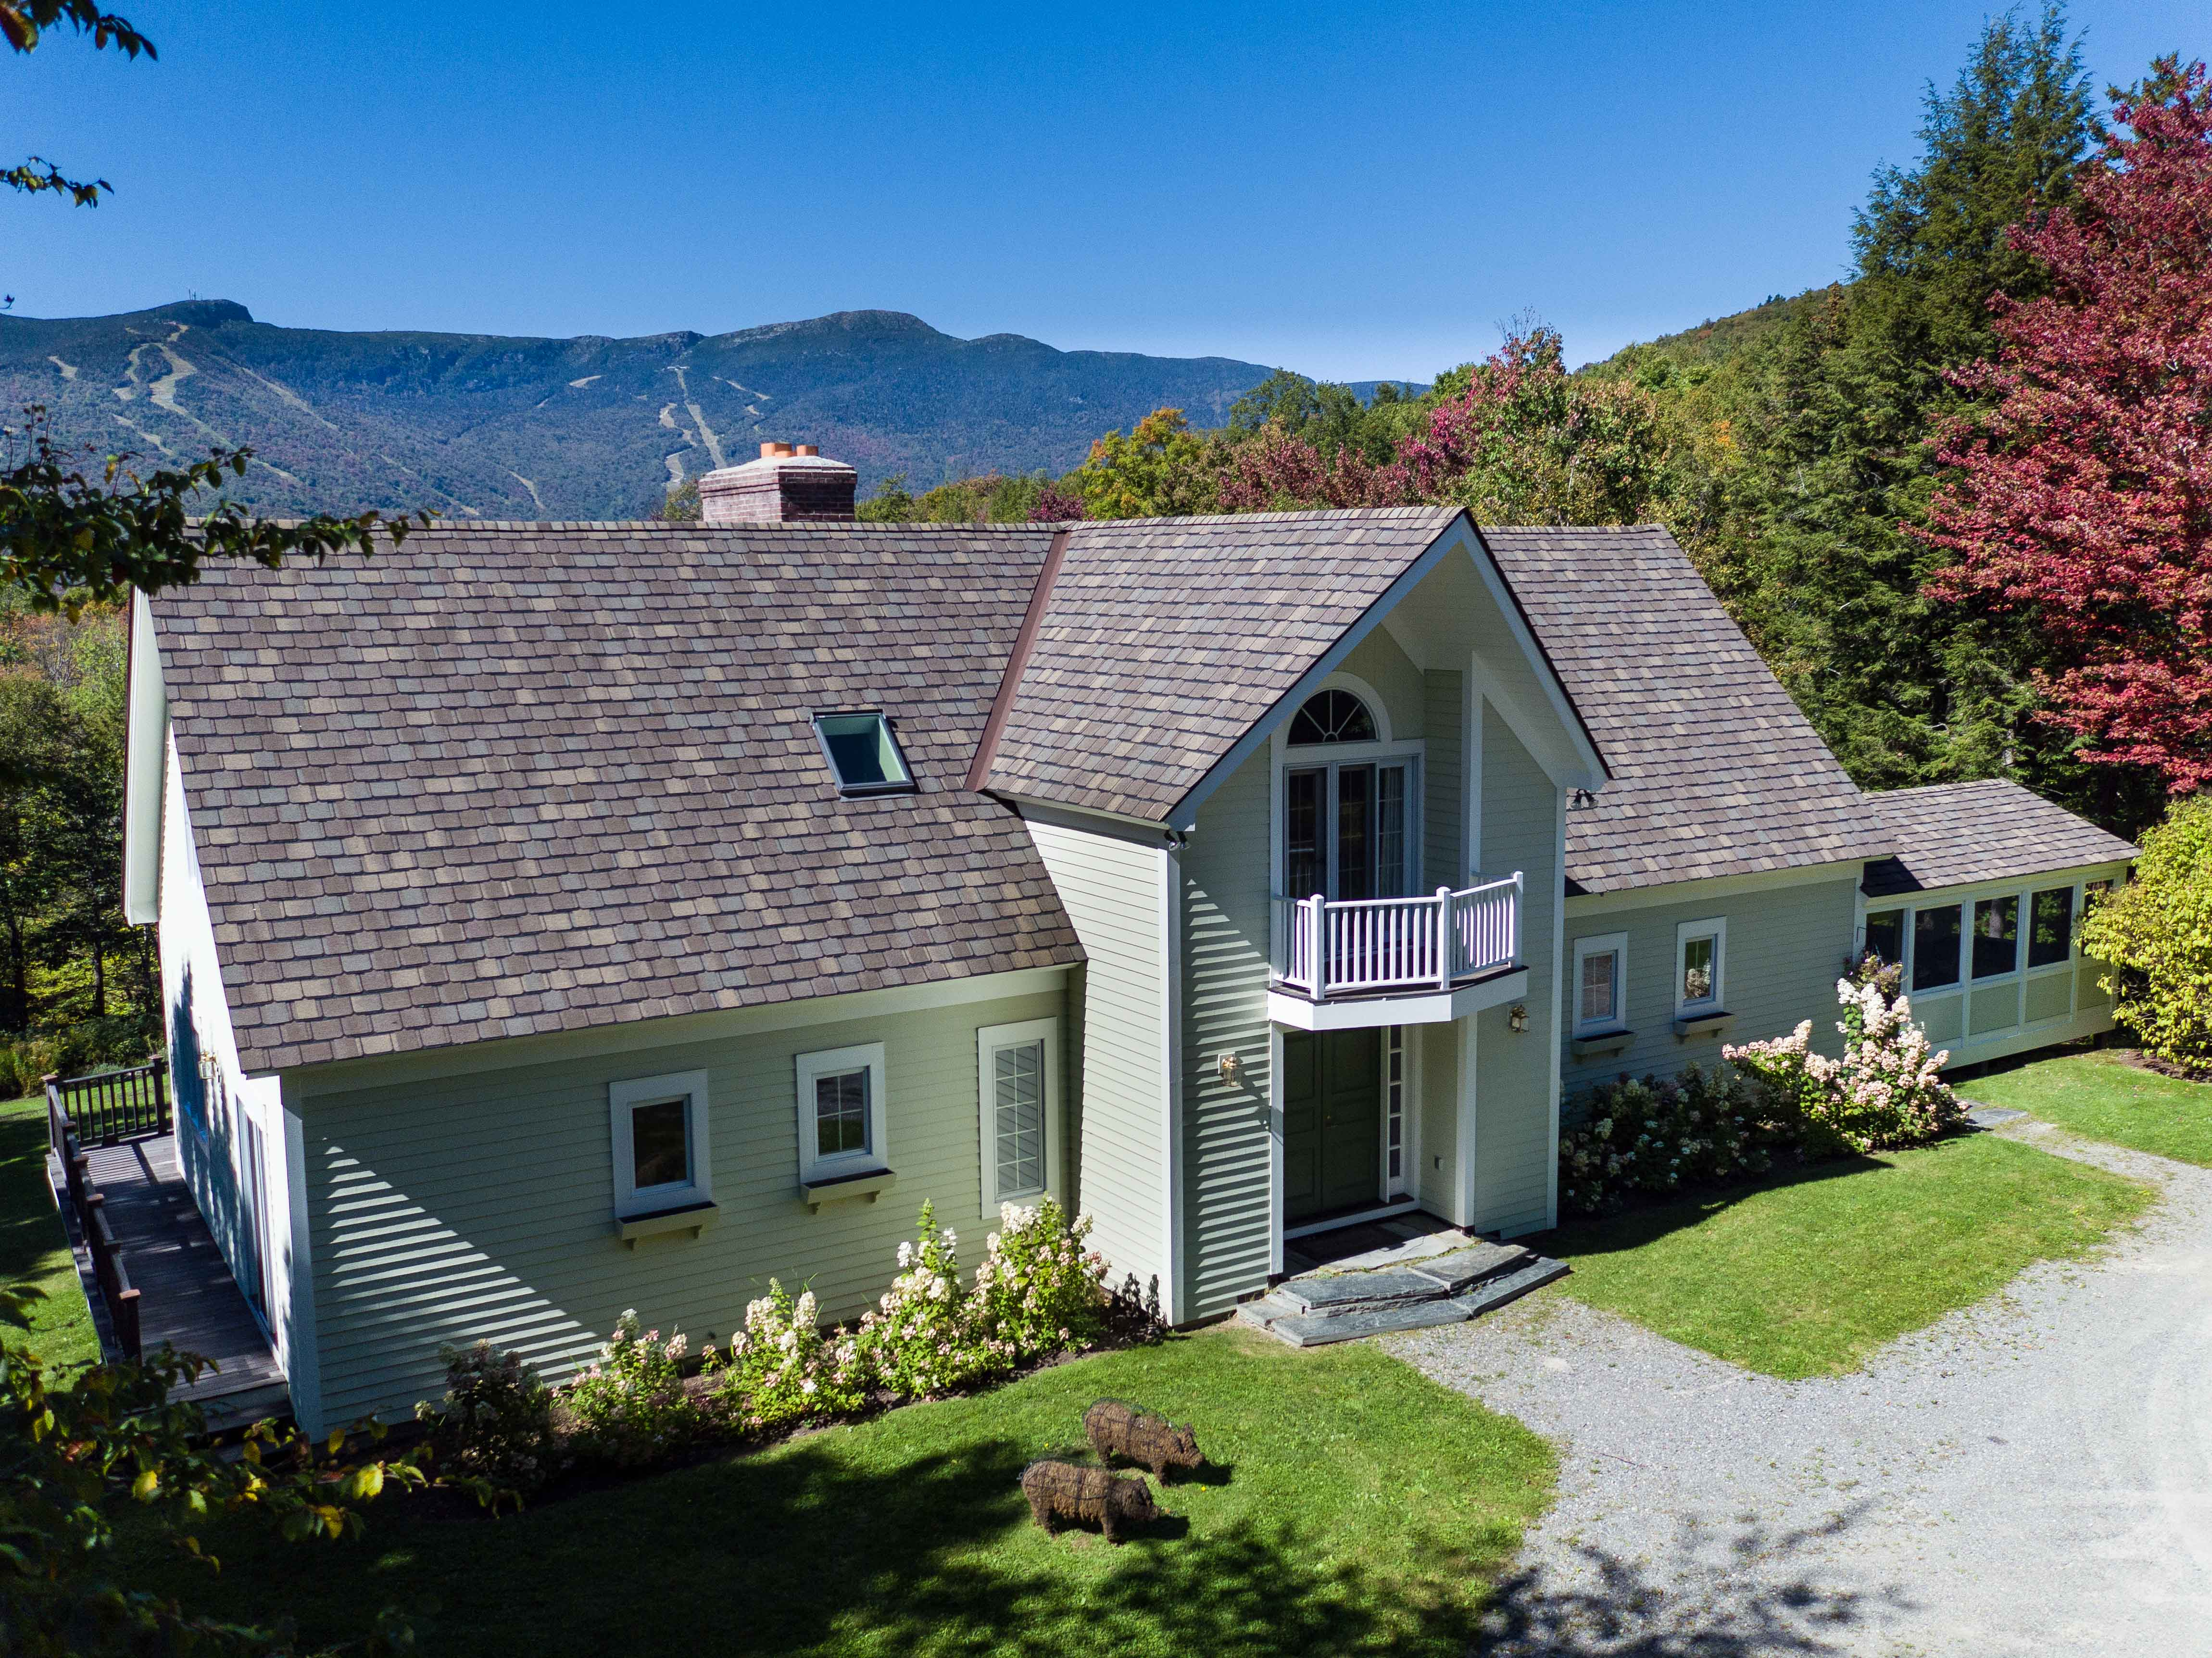 usa real of simply rentals estate plymouth beautiful homes most in vermont us one cottage the